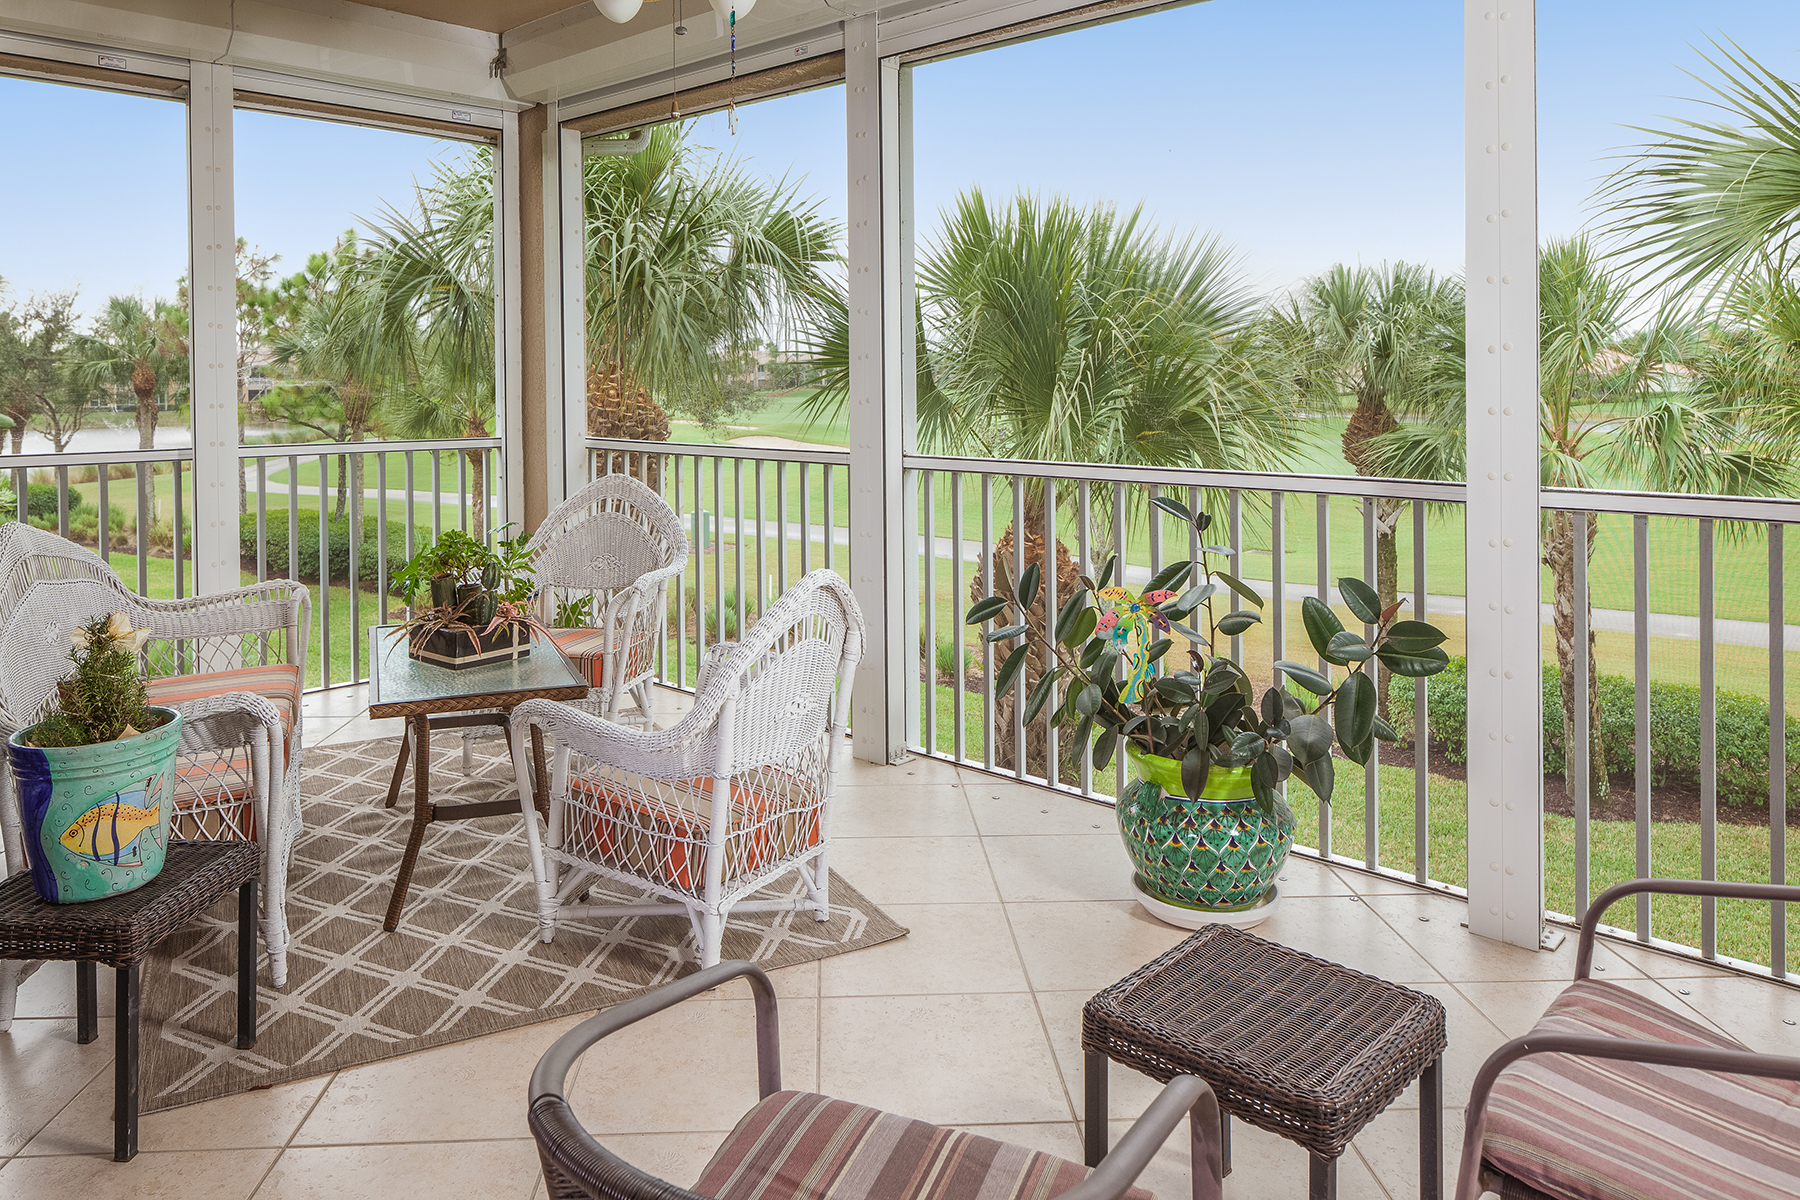 Кондоминиум для того Продажа на SHADOW WOOD AT THE BROOKS - OAK HAMMOCK 11 10442 Autumn Breeze Dr 201 Estero, Флорида, 34135 Соединенные Штаты